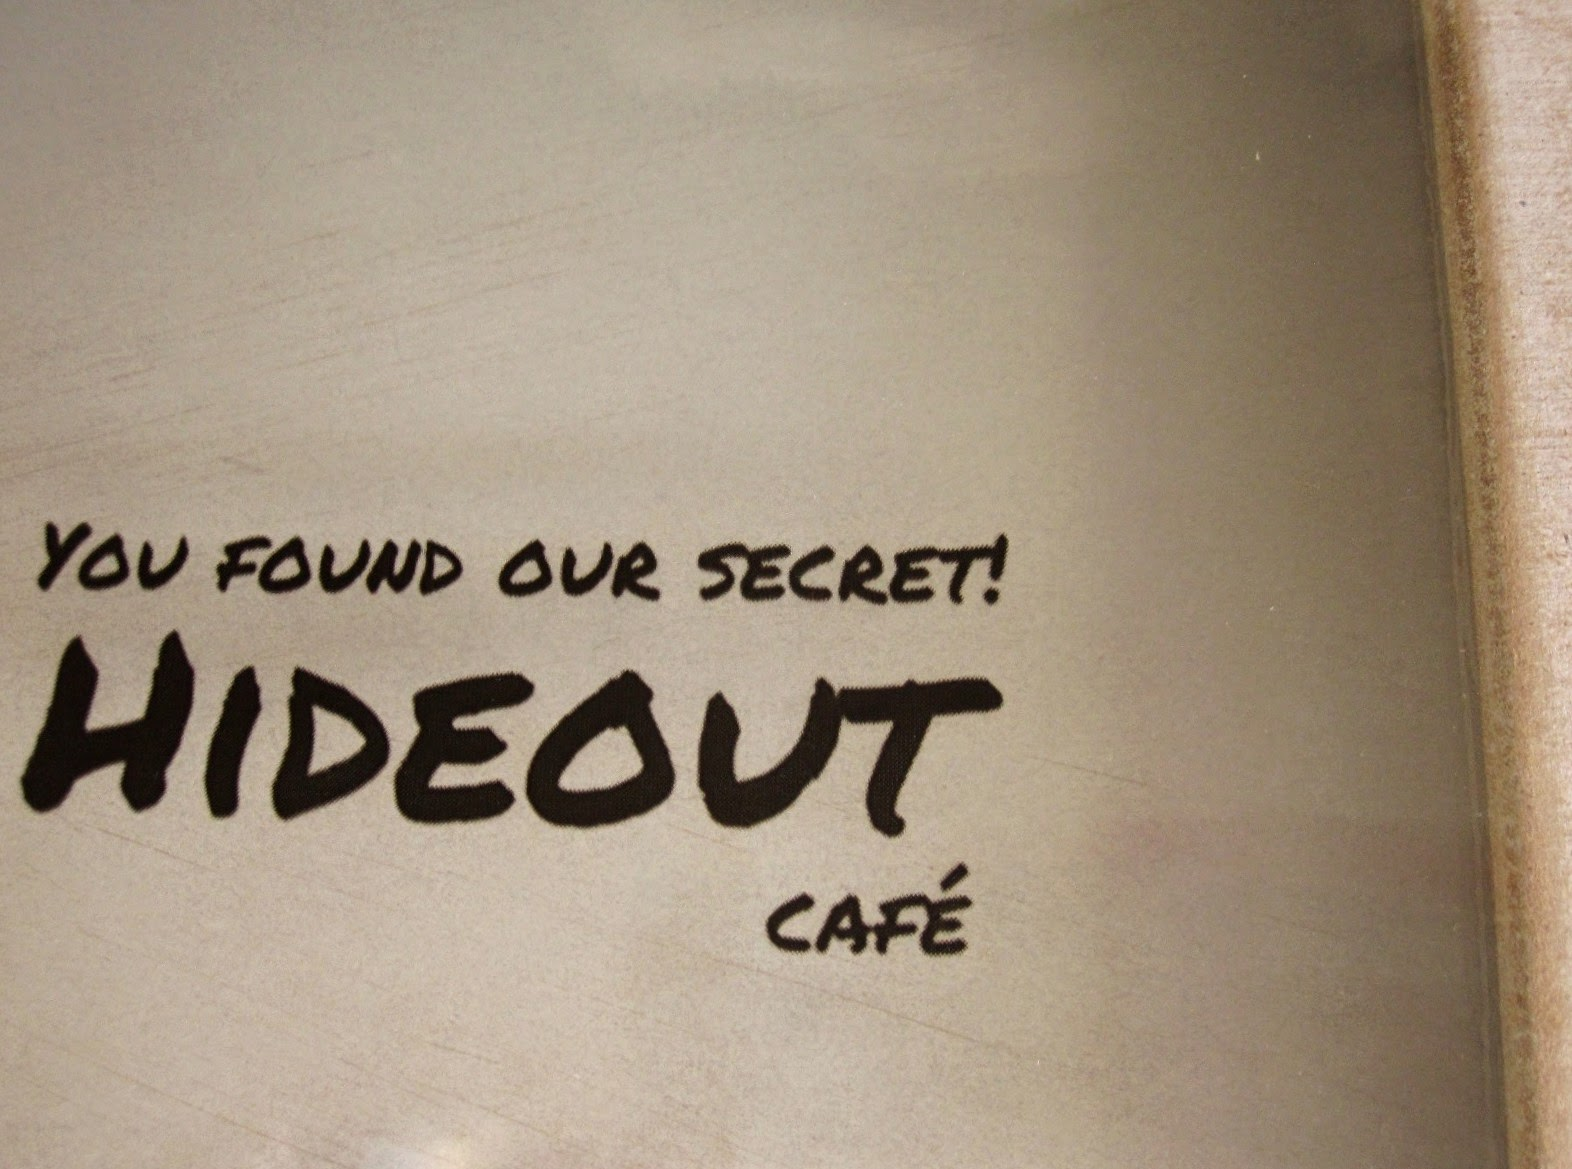 Modern dolls' house miniature window sign which says 'You've found our secret! Hideout cafe""